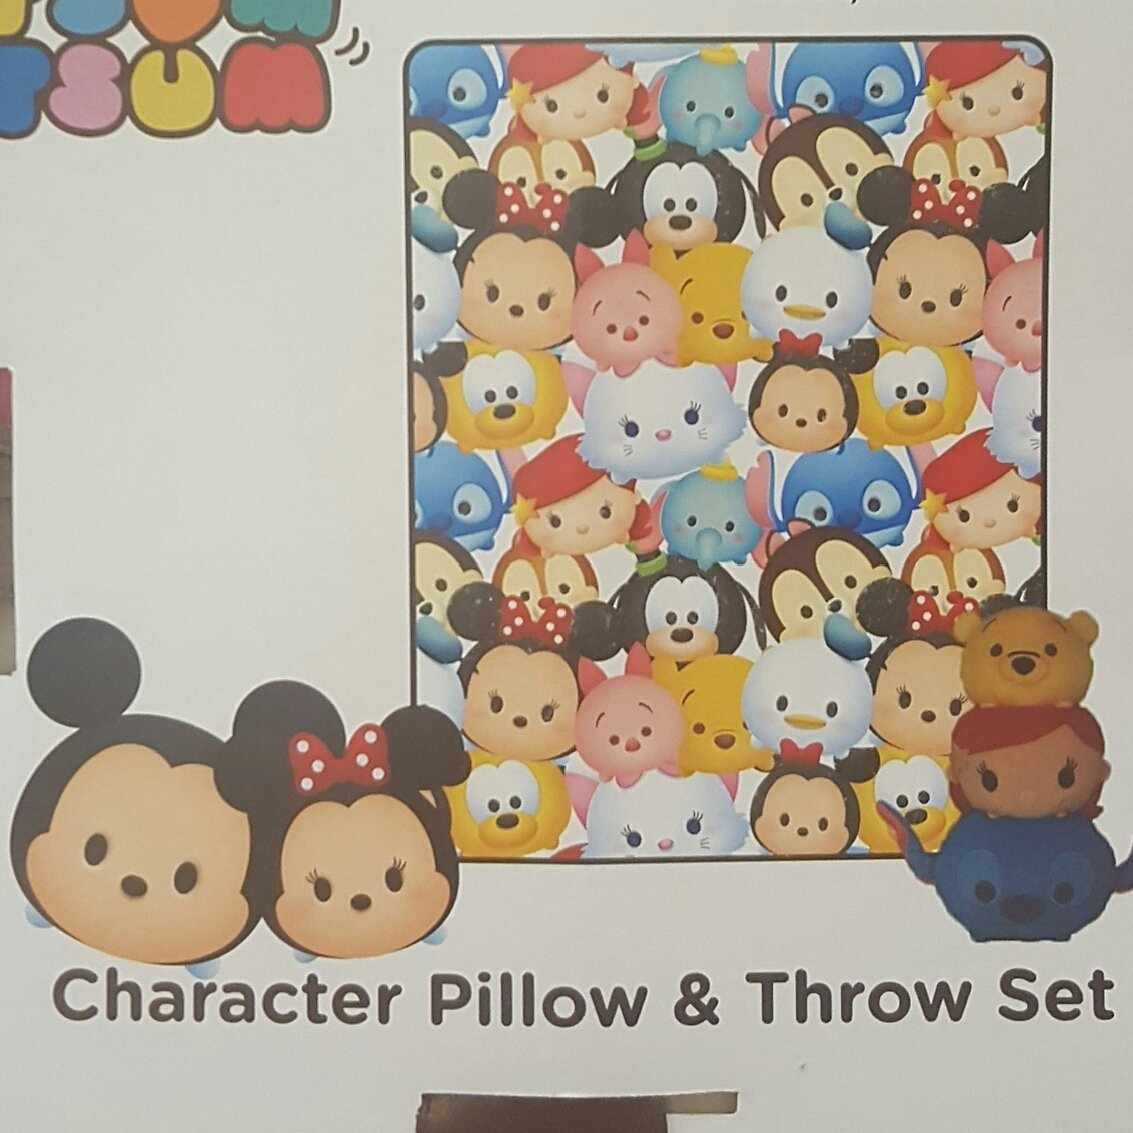 Disney Character Pillow Throw Blanket Image 2